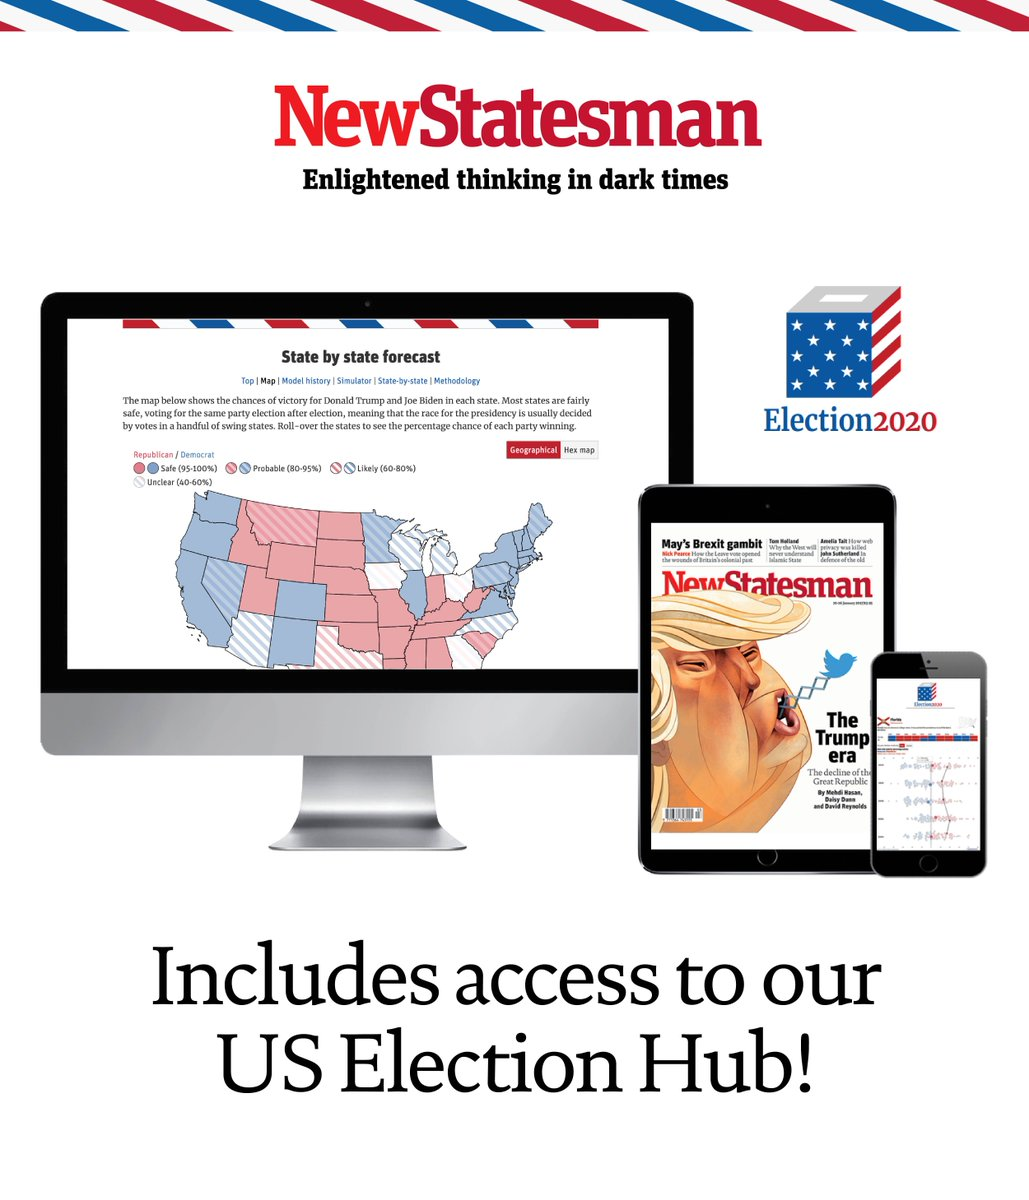 Subscribe now to the New Statesman for just £12 and get full access to our US election hub including the latest forecast on the NS results model, a live blog with interactive charts and graphics, swing state stories, in-depths profiles and analysis: tinyurl.com/y46hujn5